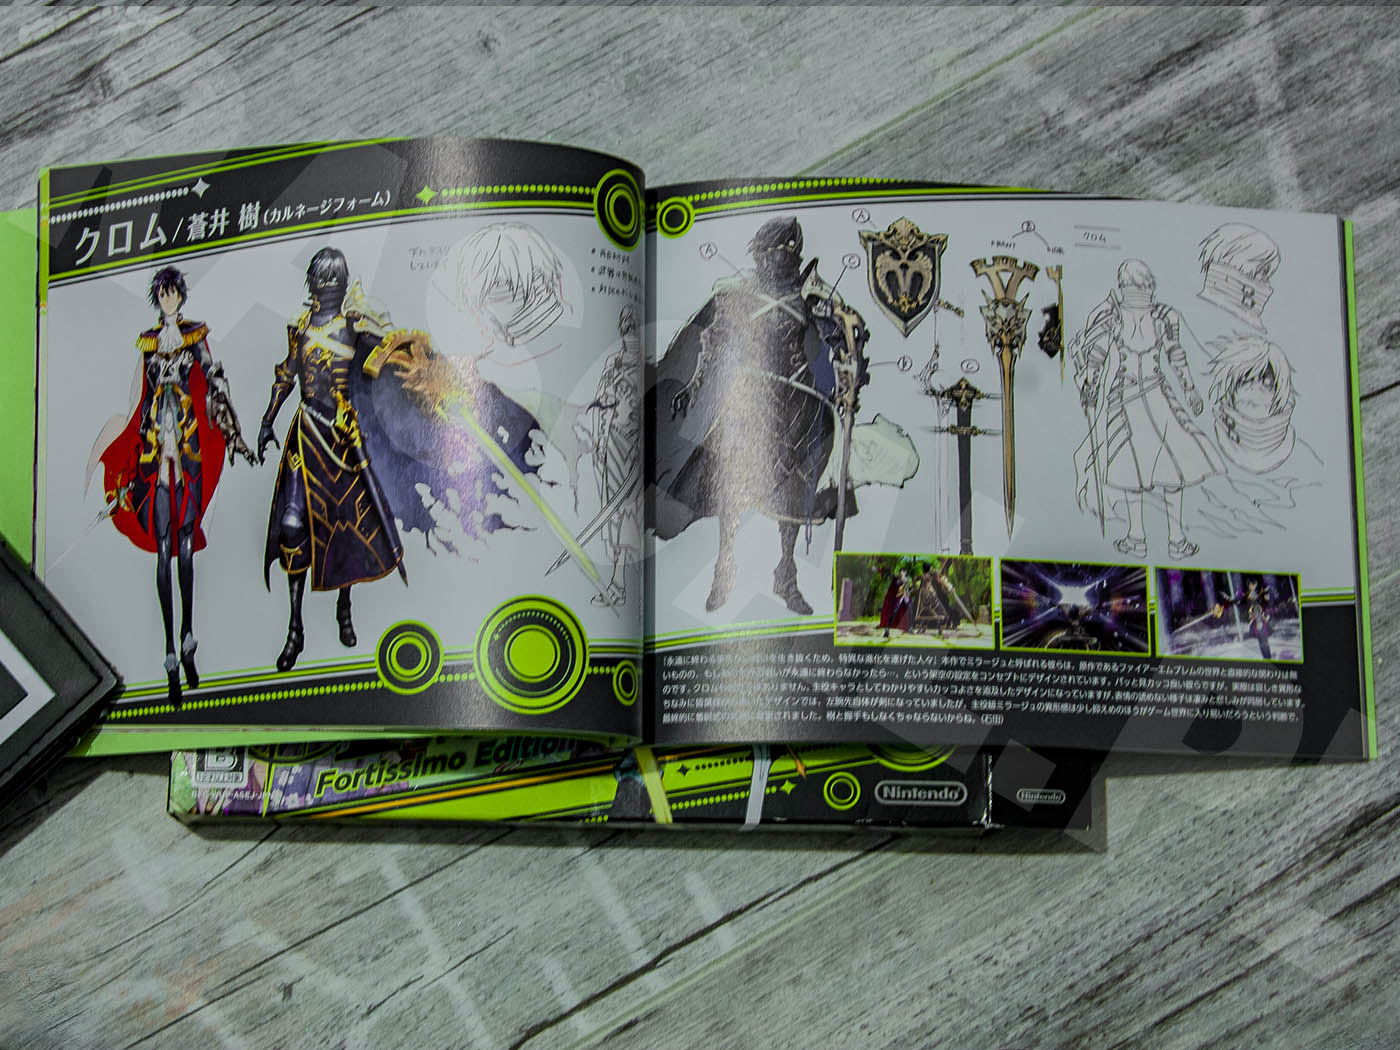 Tokyo Mirage Sessions #FE Fortissimo Edition 2015 - Artbook - Chrom